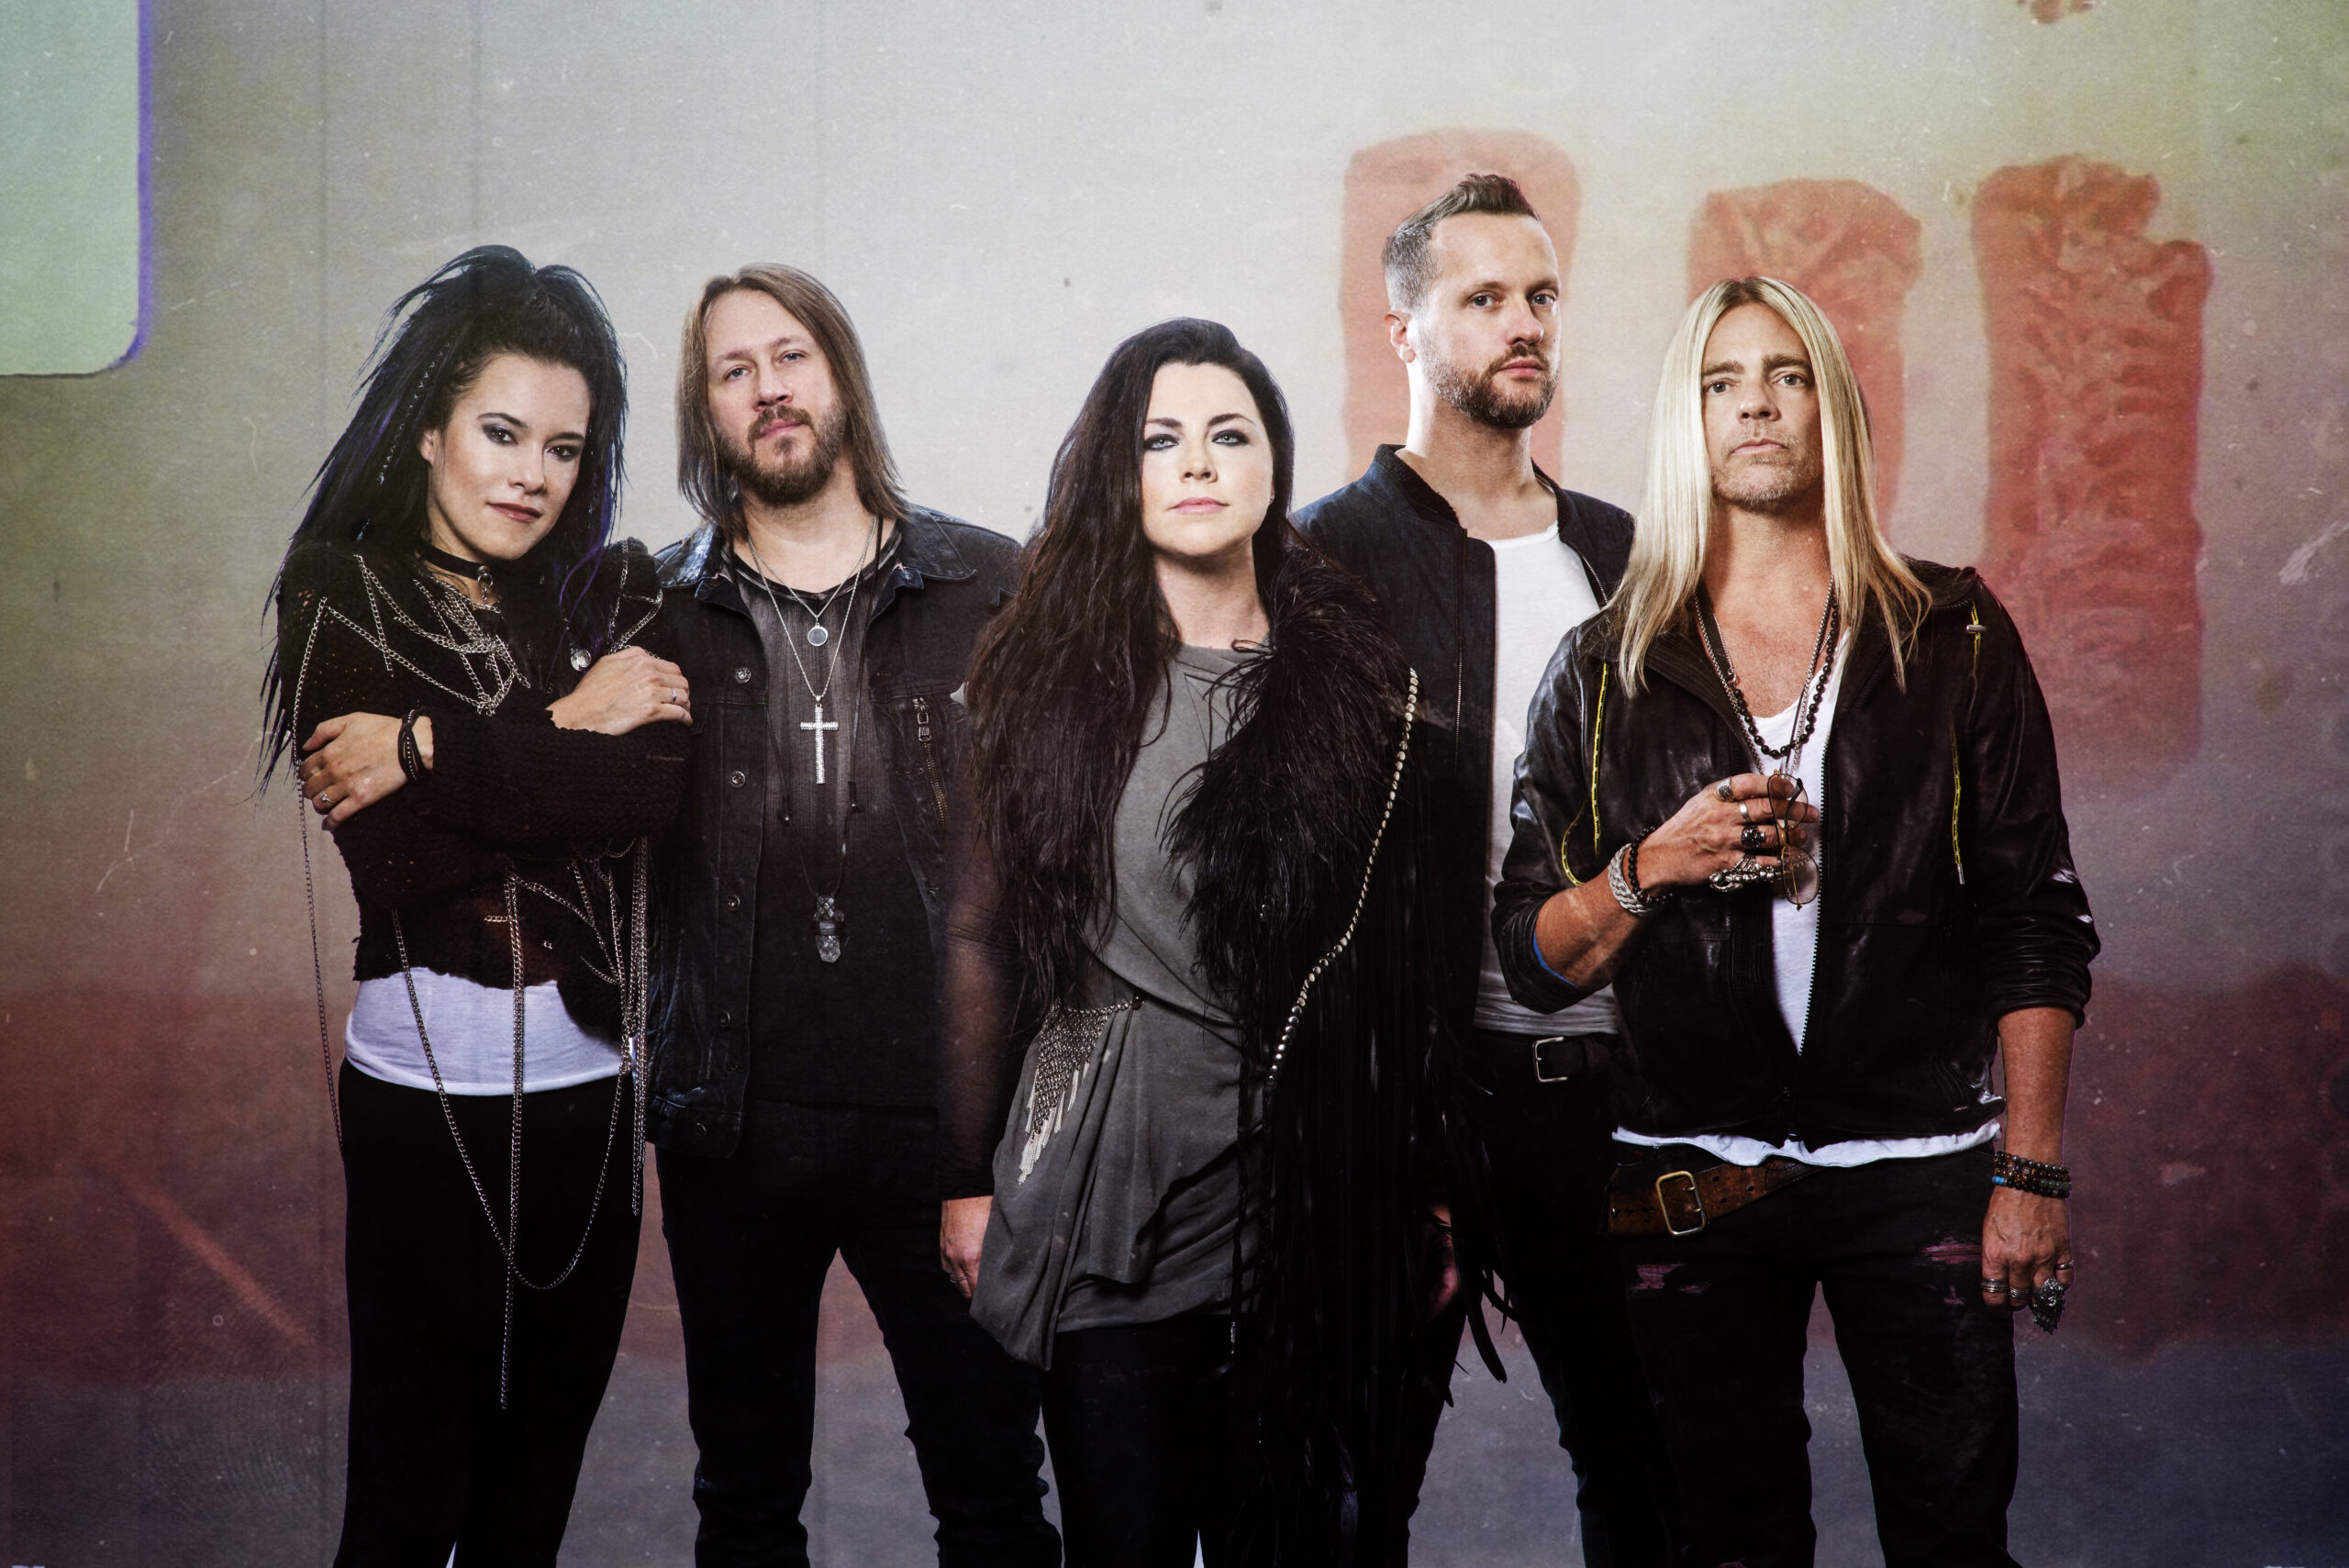 """Evanescence announce first album in 9 years, drop """"Wasted on You"""""""